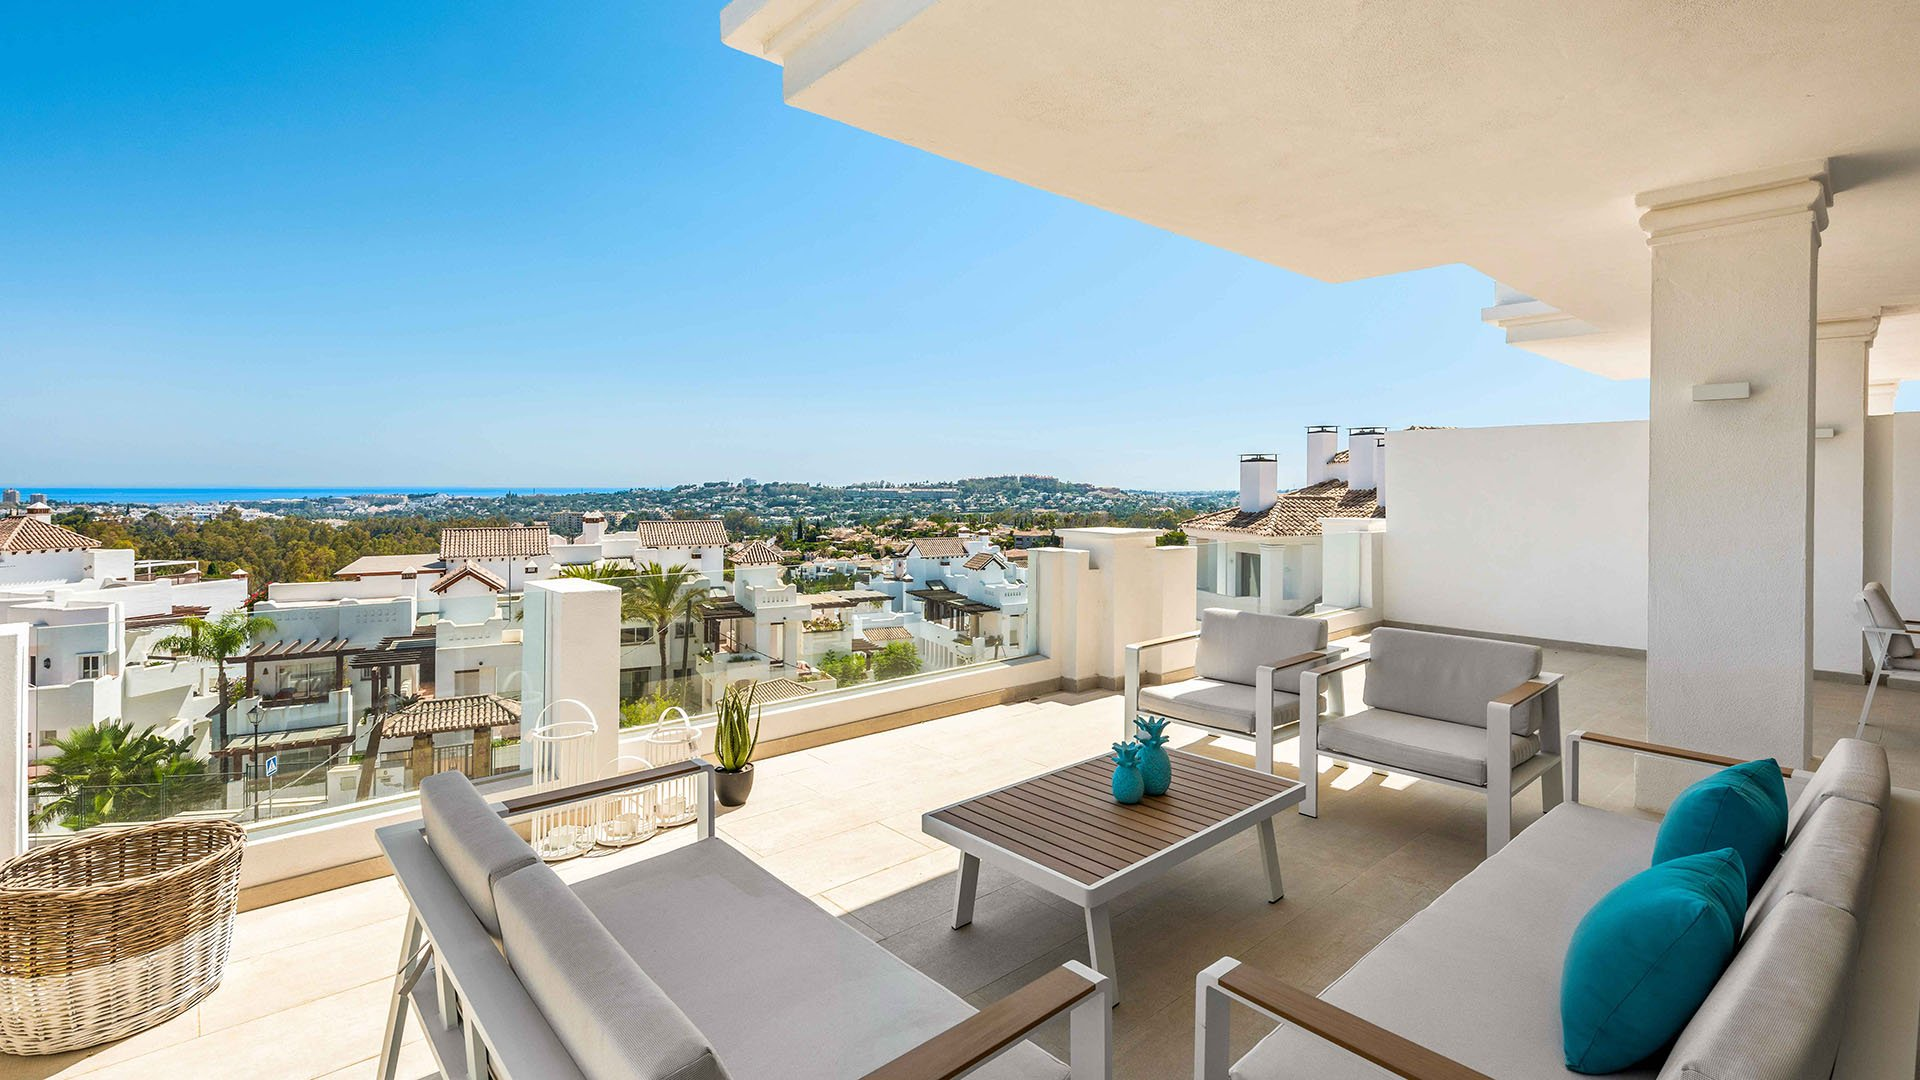 Nine Lions Residences: Spacious luxury penthouses in Nueva Andalucía